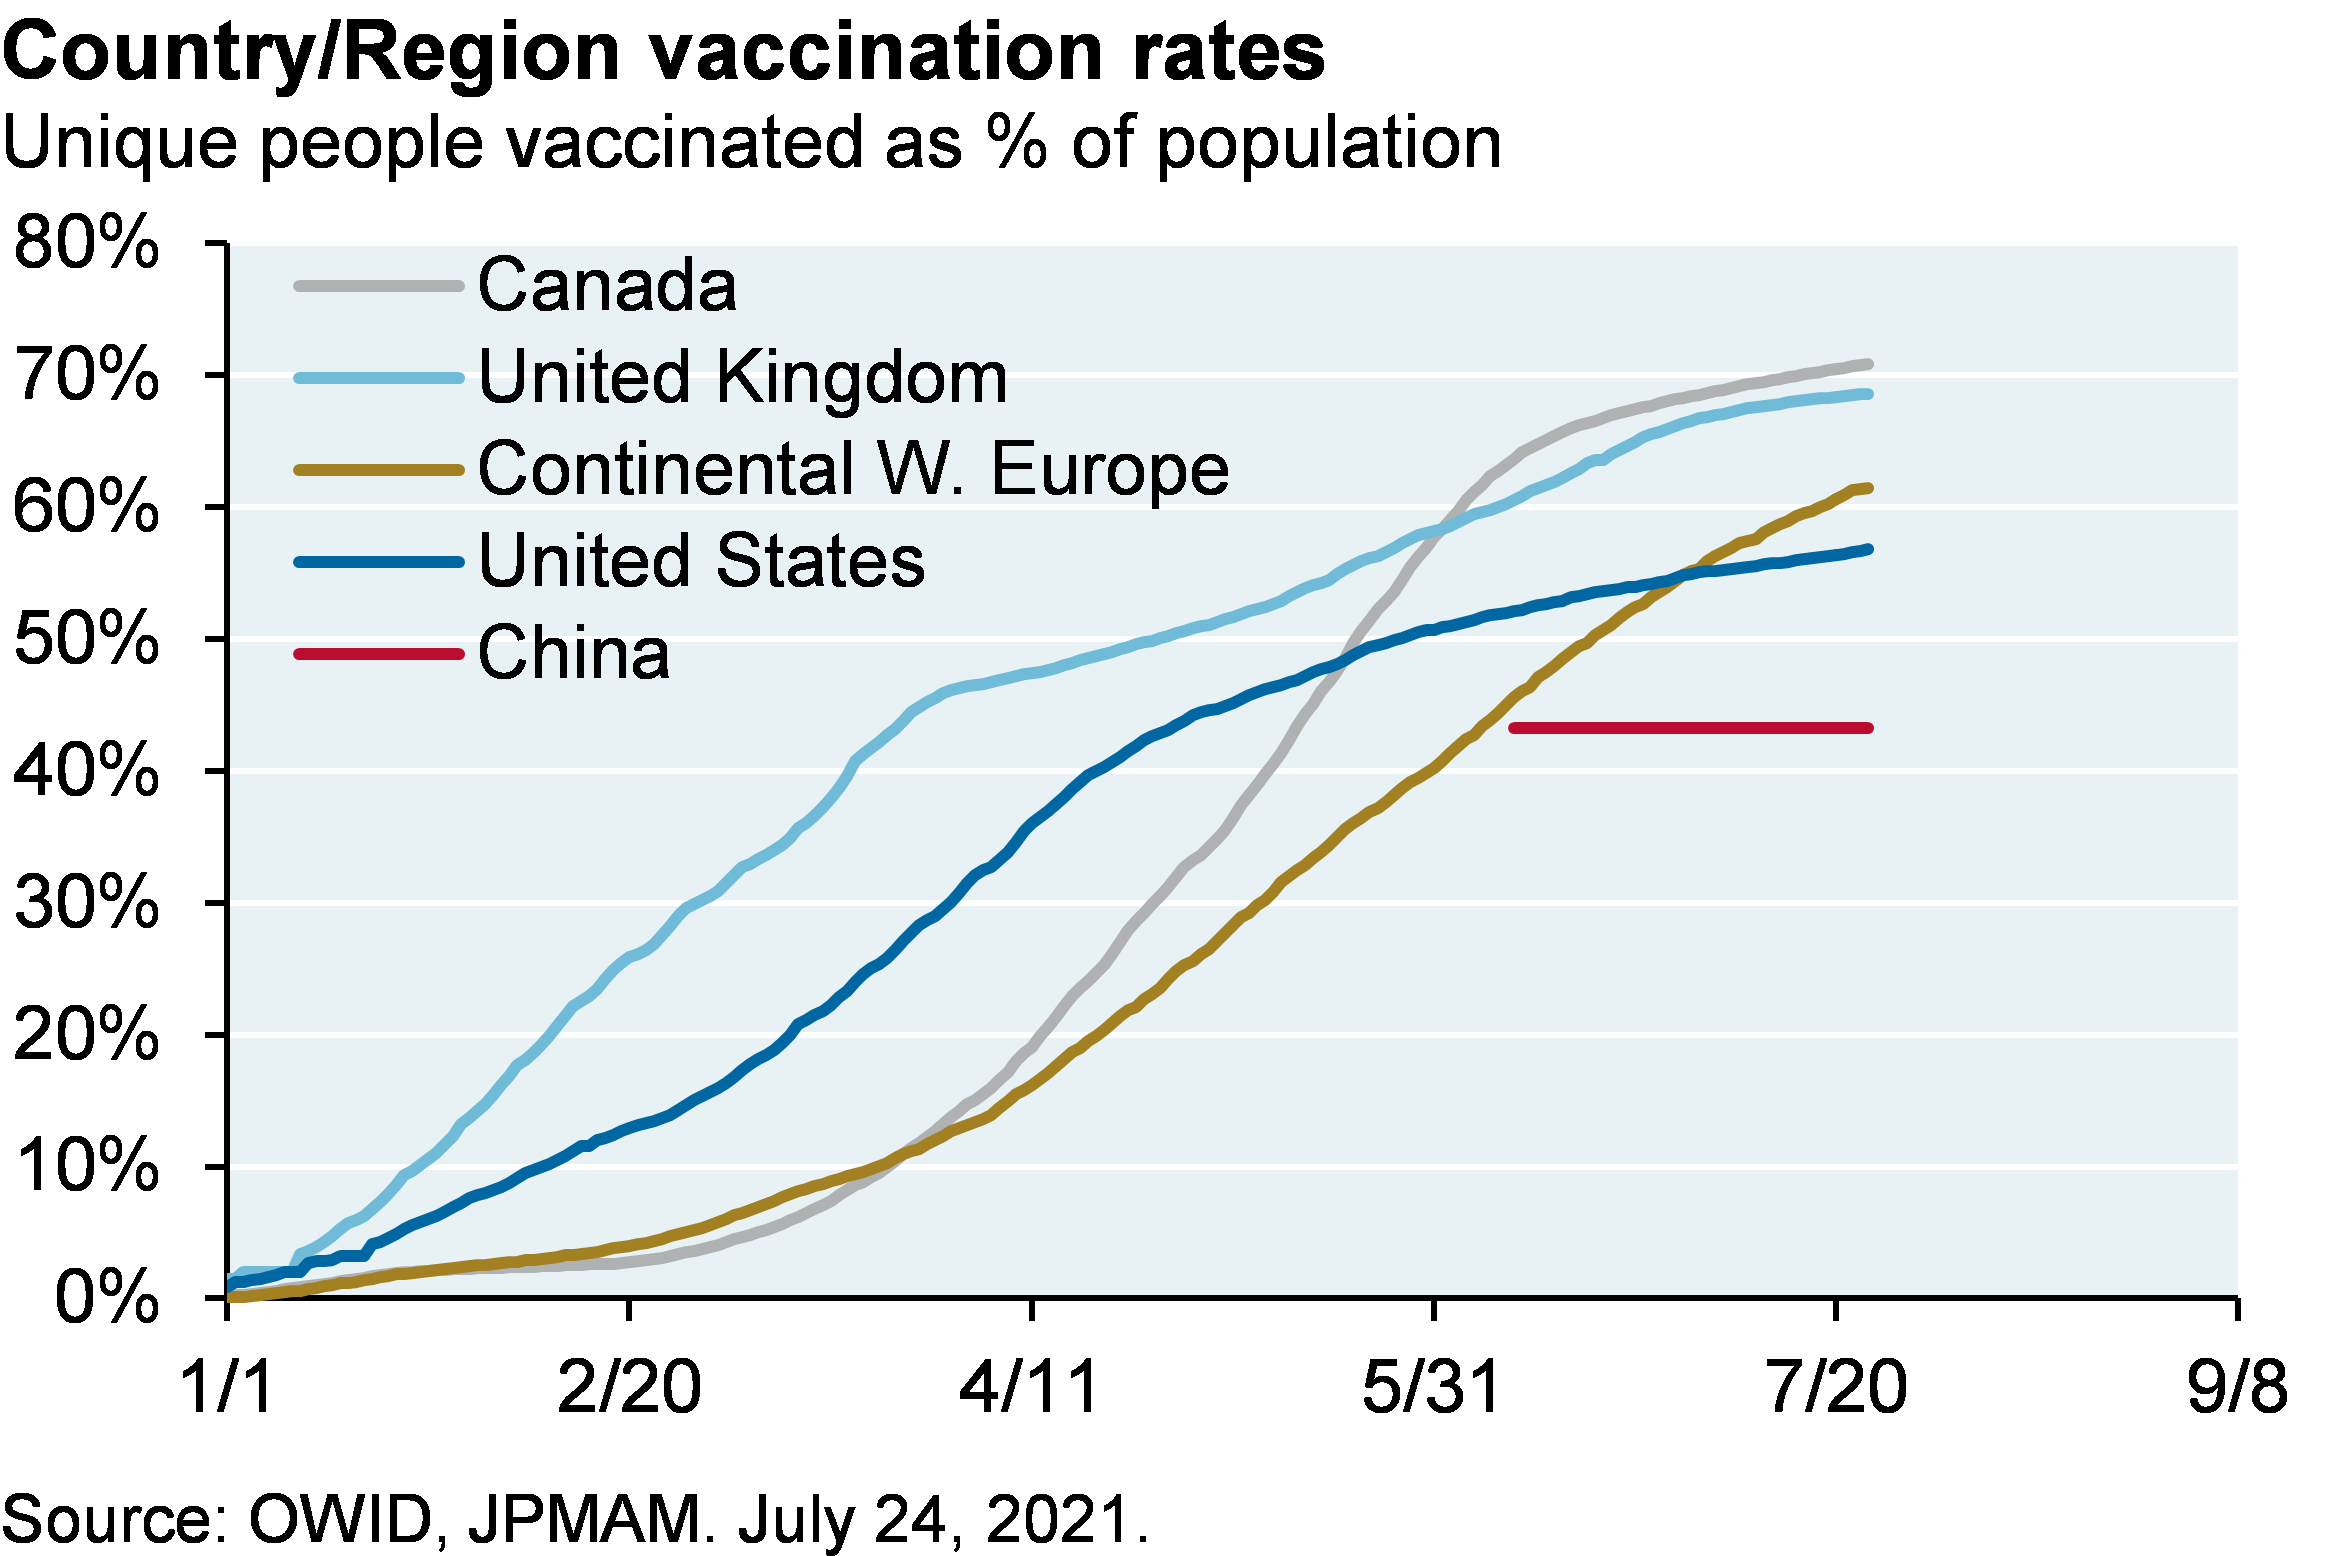 Line chart shows country/region vaccination rates for Canada, United Kingdom, Continental Western Europe, United States and China since January 2021, shown as unique people vaccinated as % of population. At their most recent point, Canada has the highest percentage of people vaccinated at around 70%, closely followed by the United Kingdom. Continental Western Europe's vaccination rate is just over 60% followed by the United States at 57%. China's vaccination rate is just above 40%.